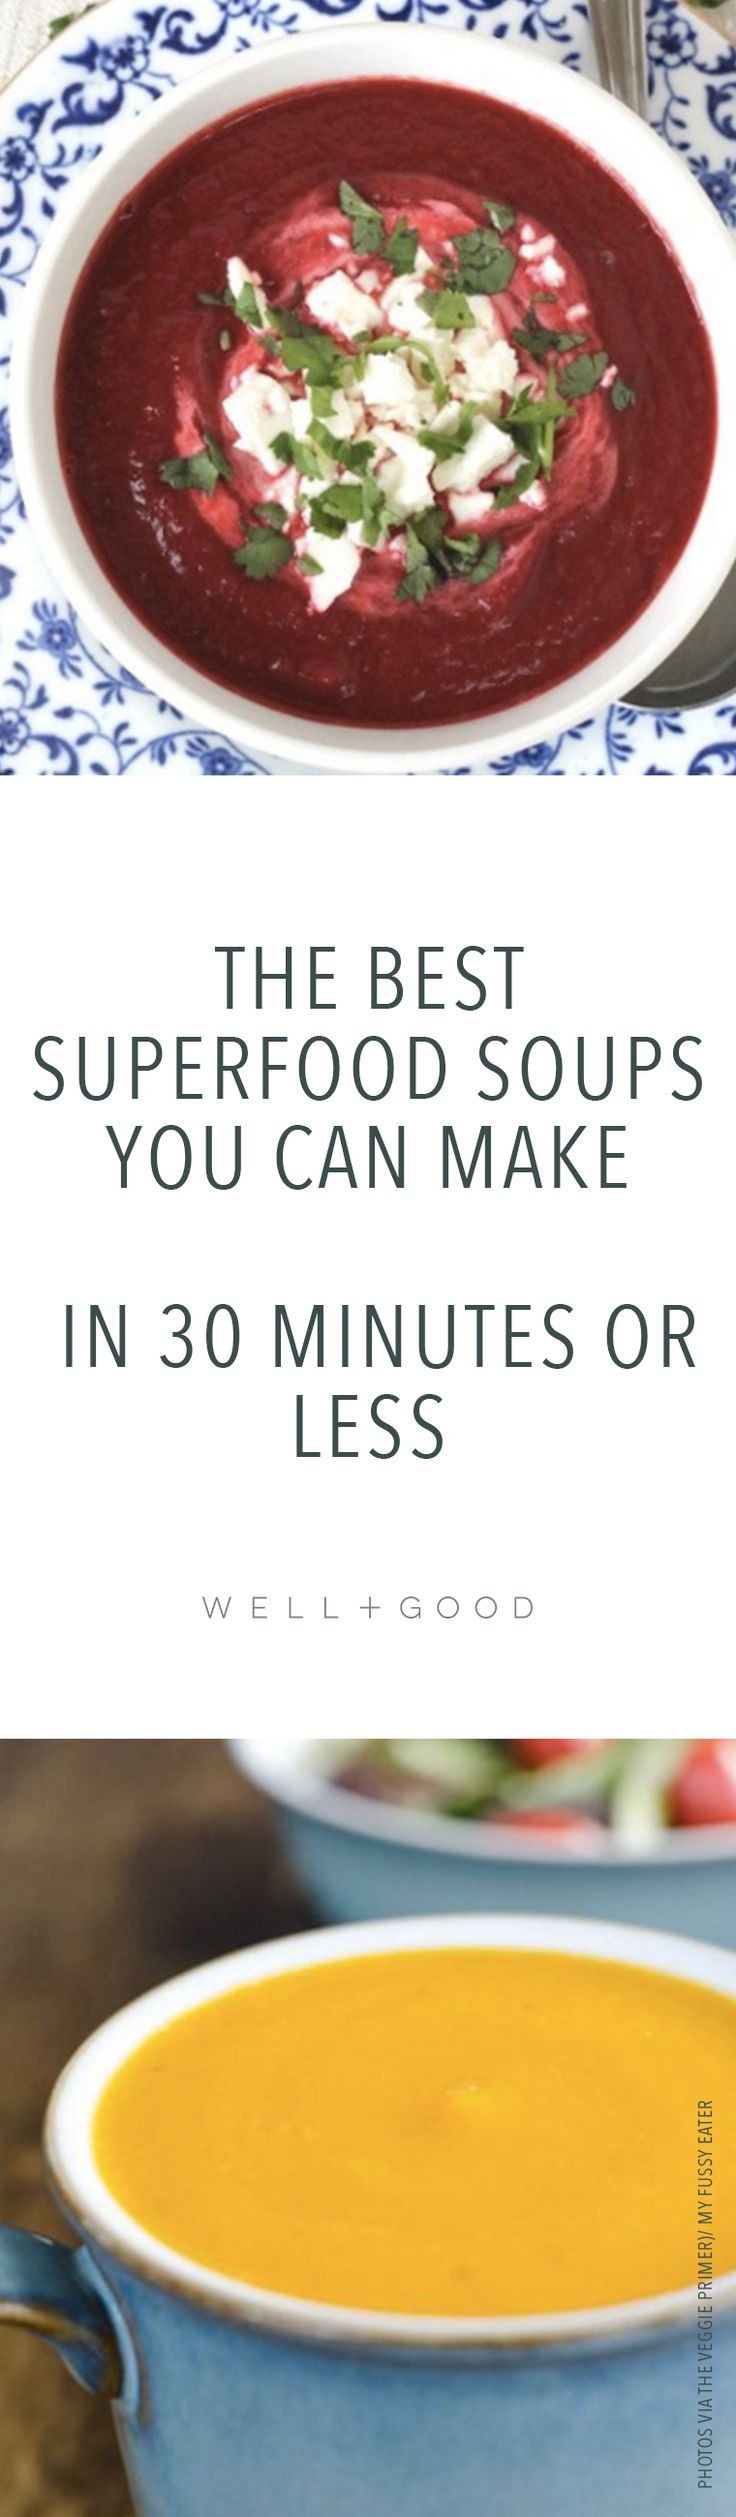 Quick and easy 30 minute healthy superfood recipes.